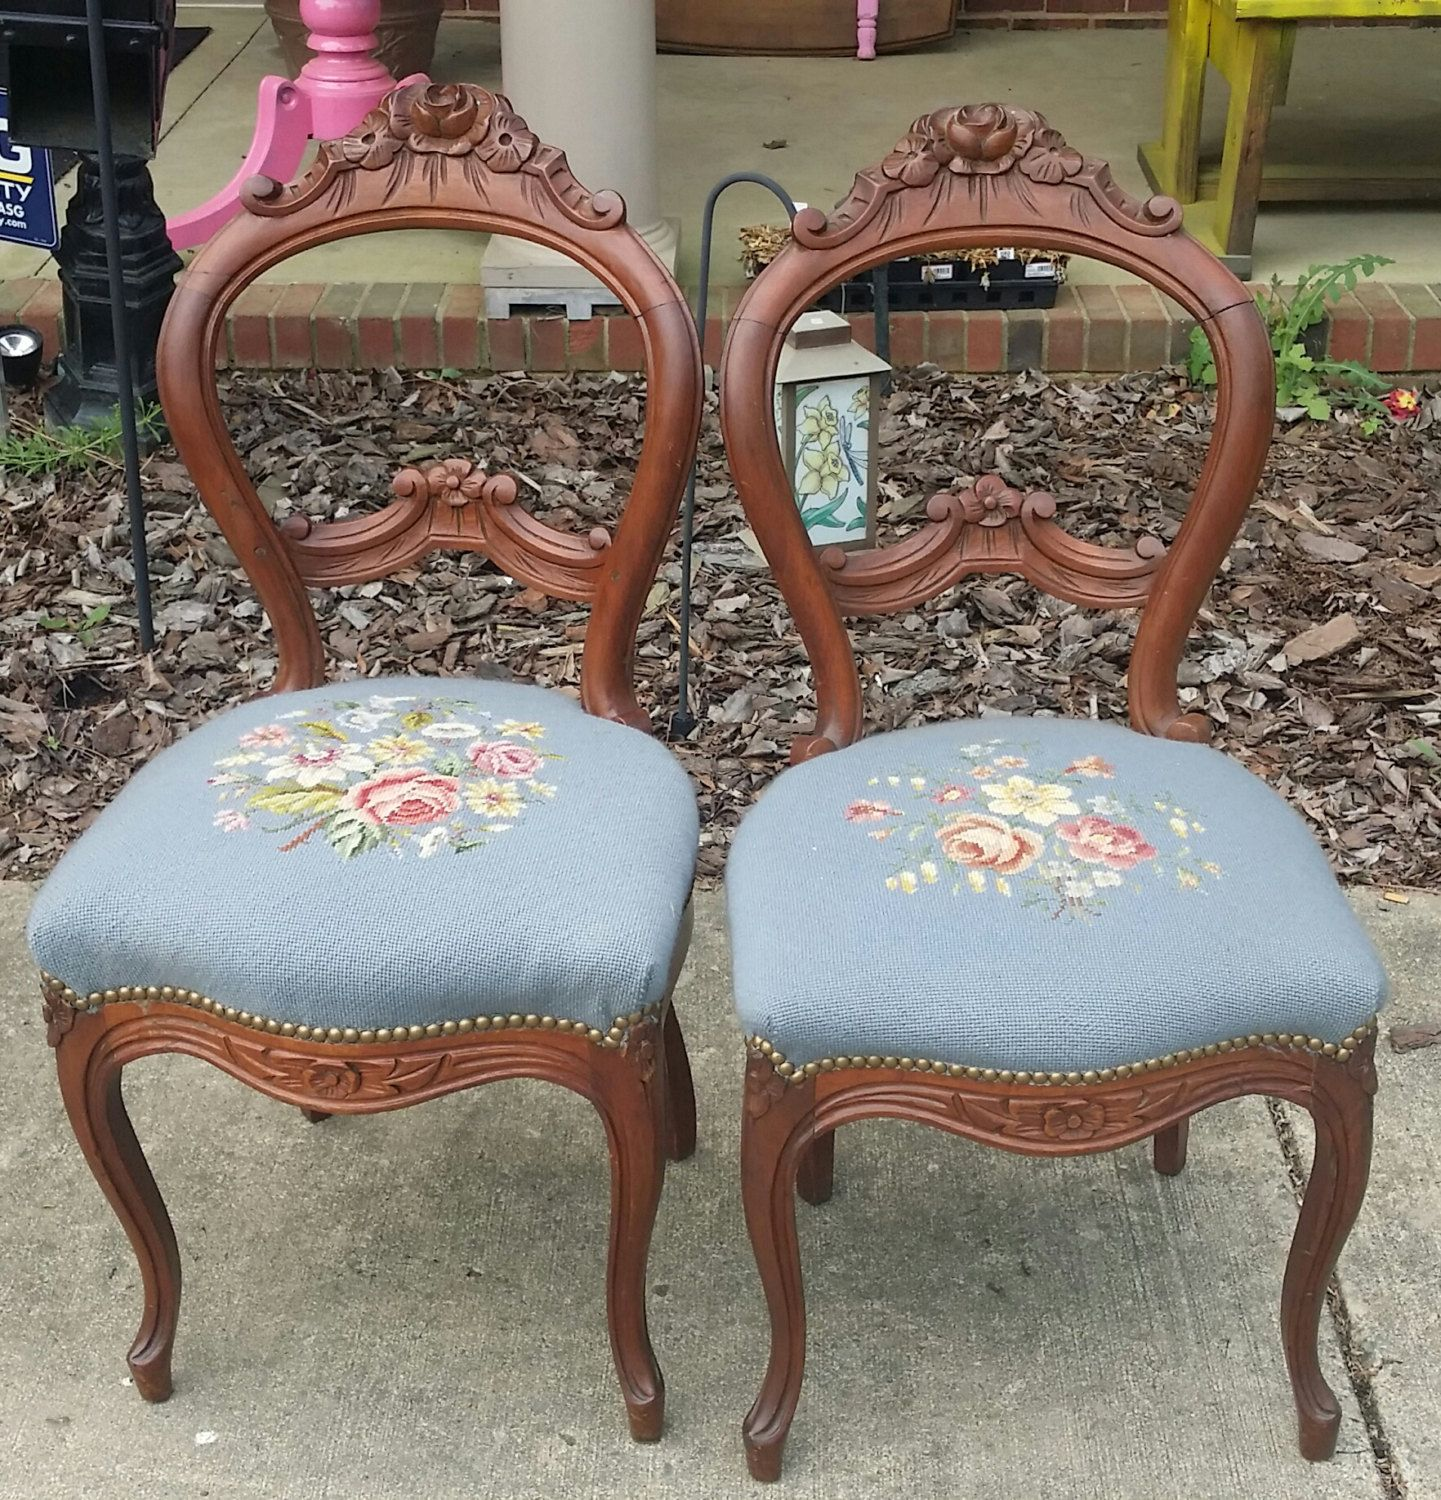 Victorian Era Dining Room: Victorian Era Balloon Back Chairs With Rose Carvings By